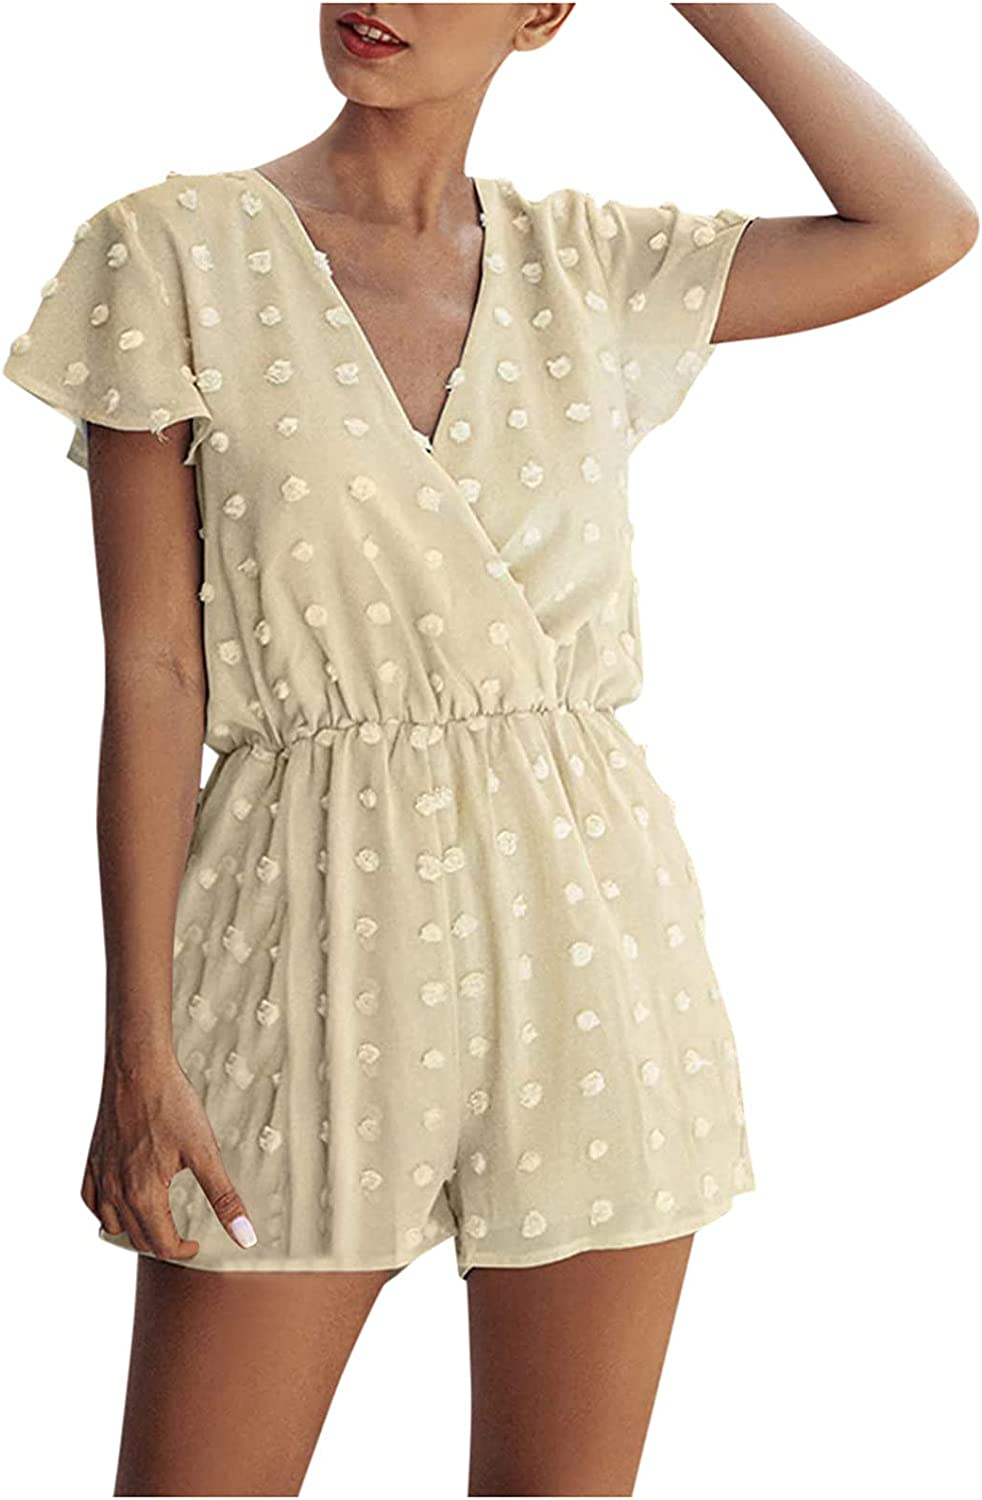 A2A Rompers for Women Summer Autumn Deep V Neck Wrap Floral Polka Dot Short Sleeve Beach Lace Up Short Jumpsuit